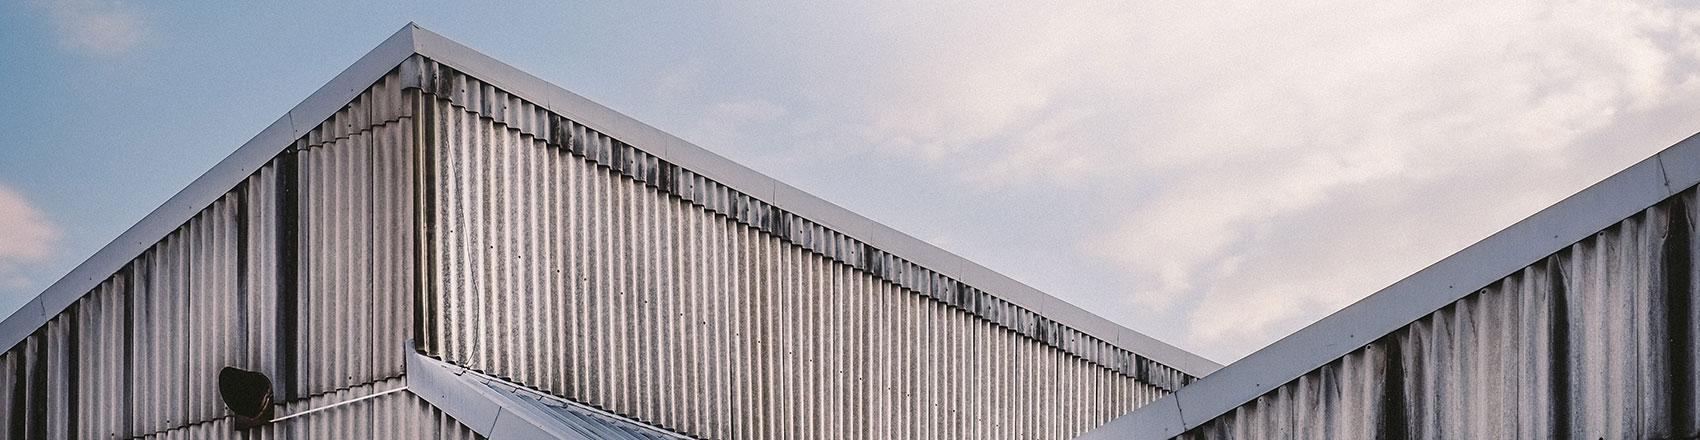 A corrugated silver metal warehouse against a blue sky.